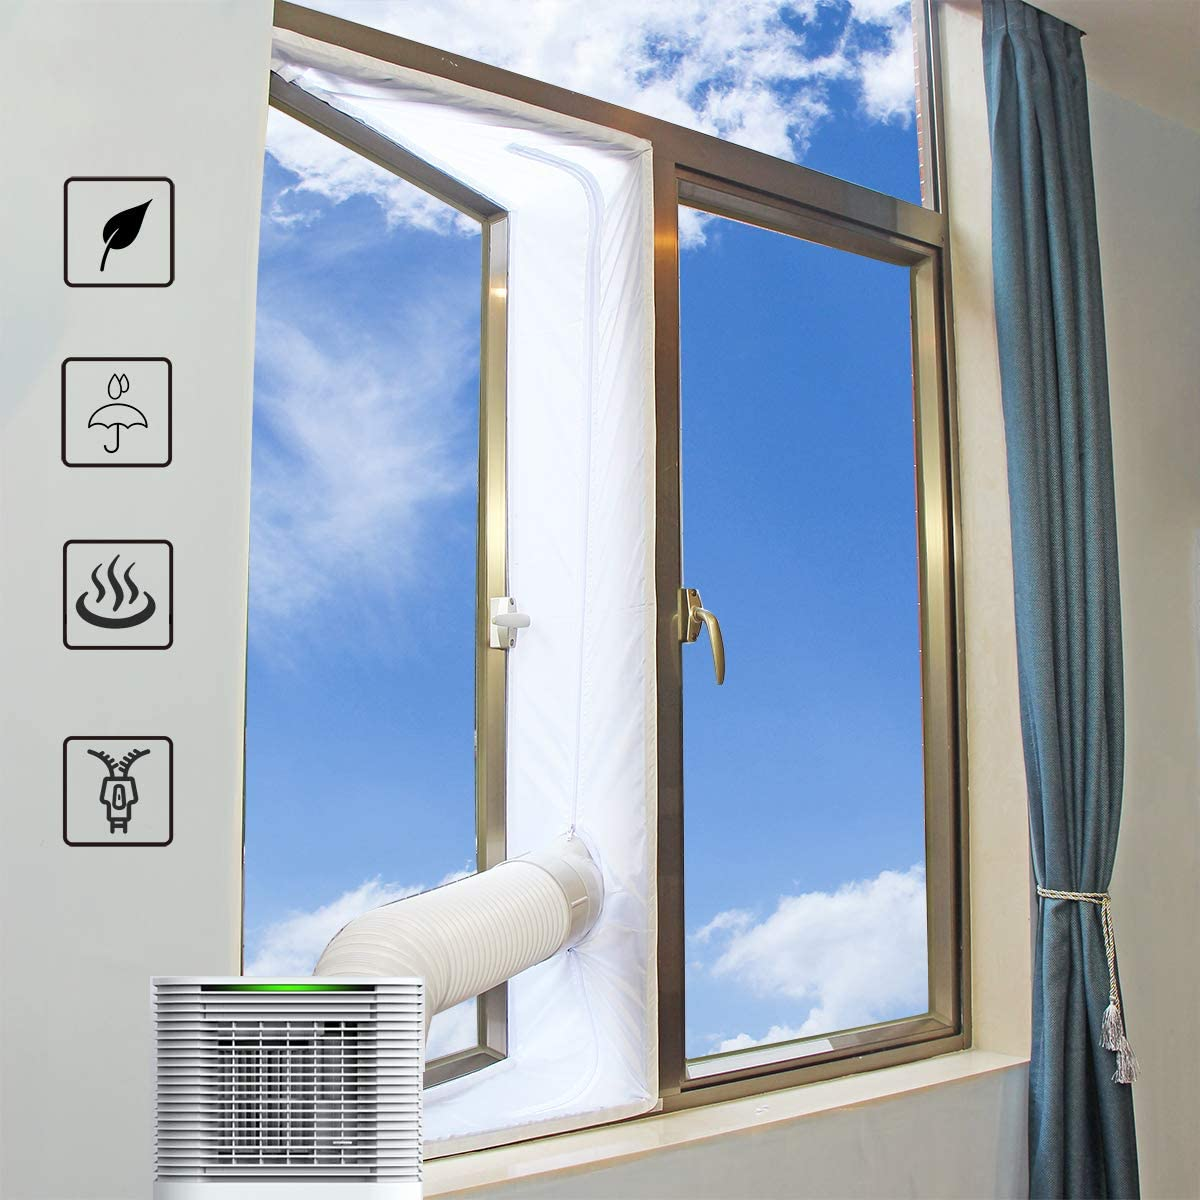 for Mobile Air Conditioner and Tumble Dryer, 400CM Window Seal Works with Portable Air Conditioning Unit No Need for Drilling Holes Universal Window Seal Hot Air Stop,Easy to Install